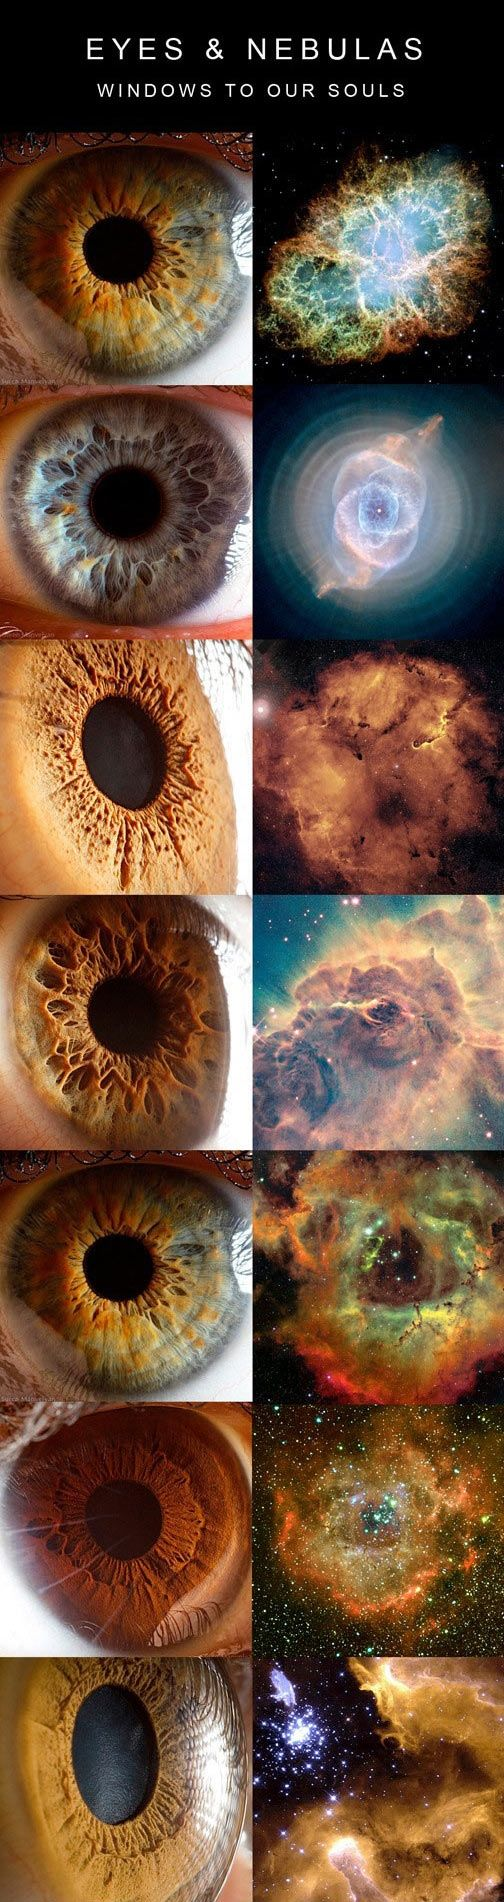 Eyes and Nebulas - Windows to the Soul.